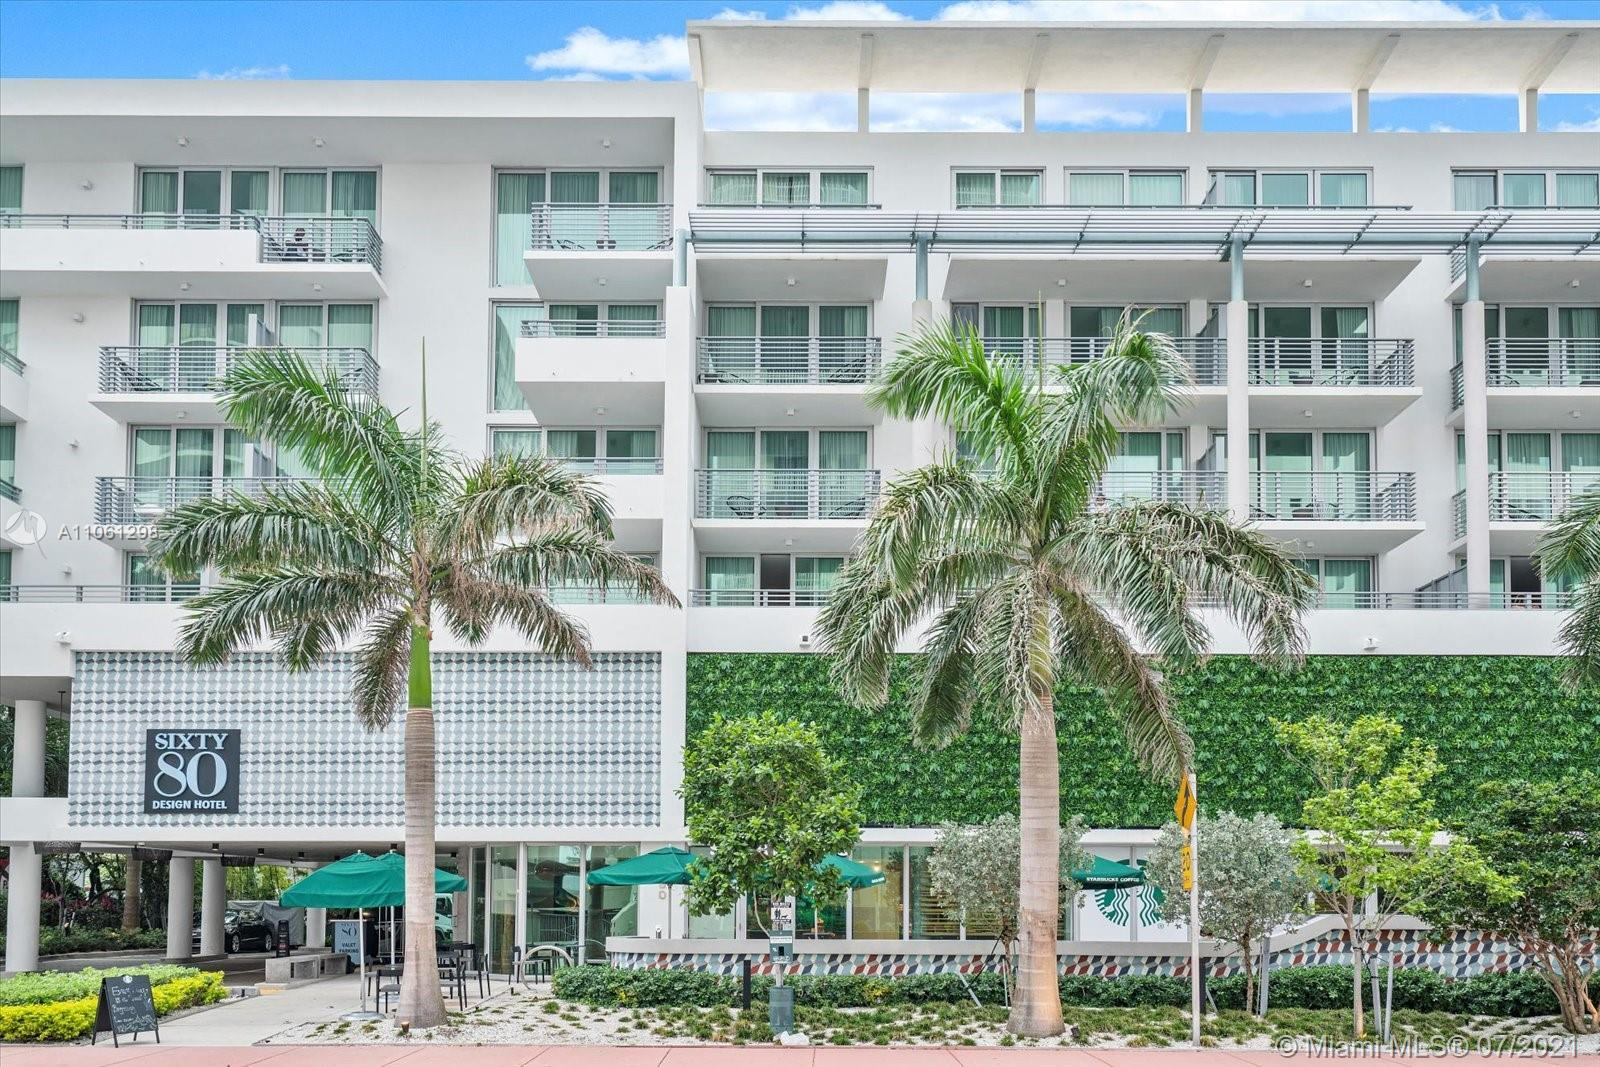 Come and experience living at Sixty80 Design Hotel Residences at Miami Beach. Unit 505 is a sub-pent